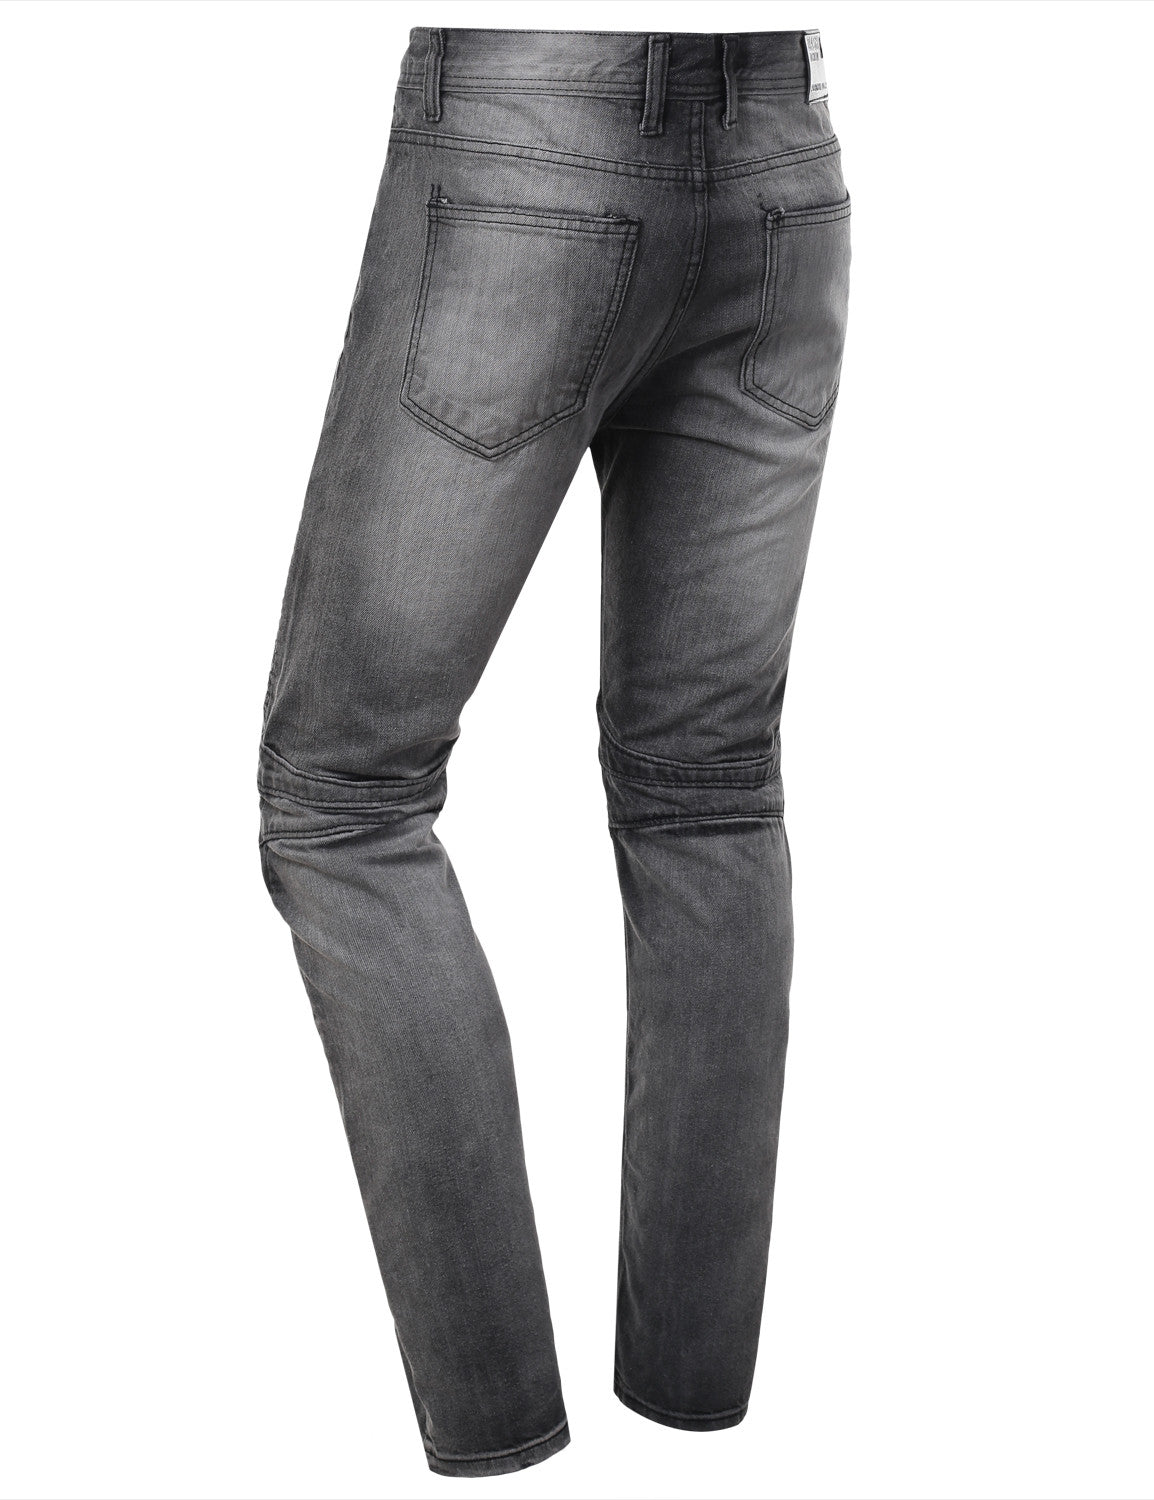 Washed Slim Fit Denim Biker Ribbed Jeans - URBANCREWS - 3